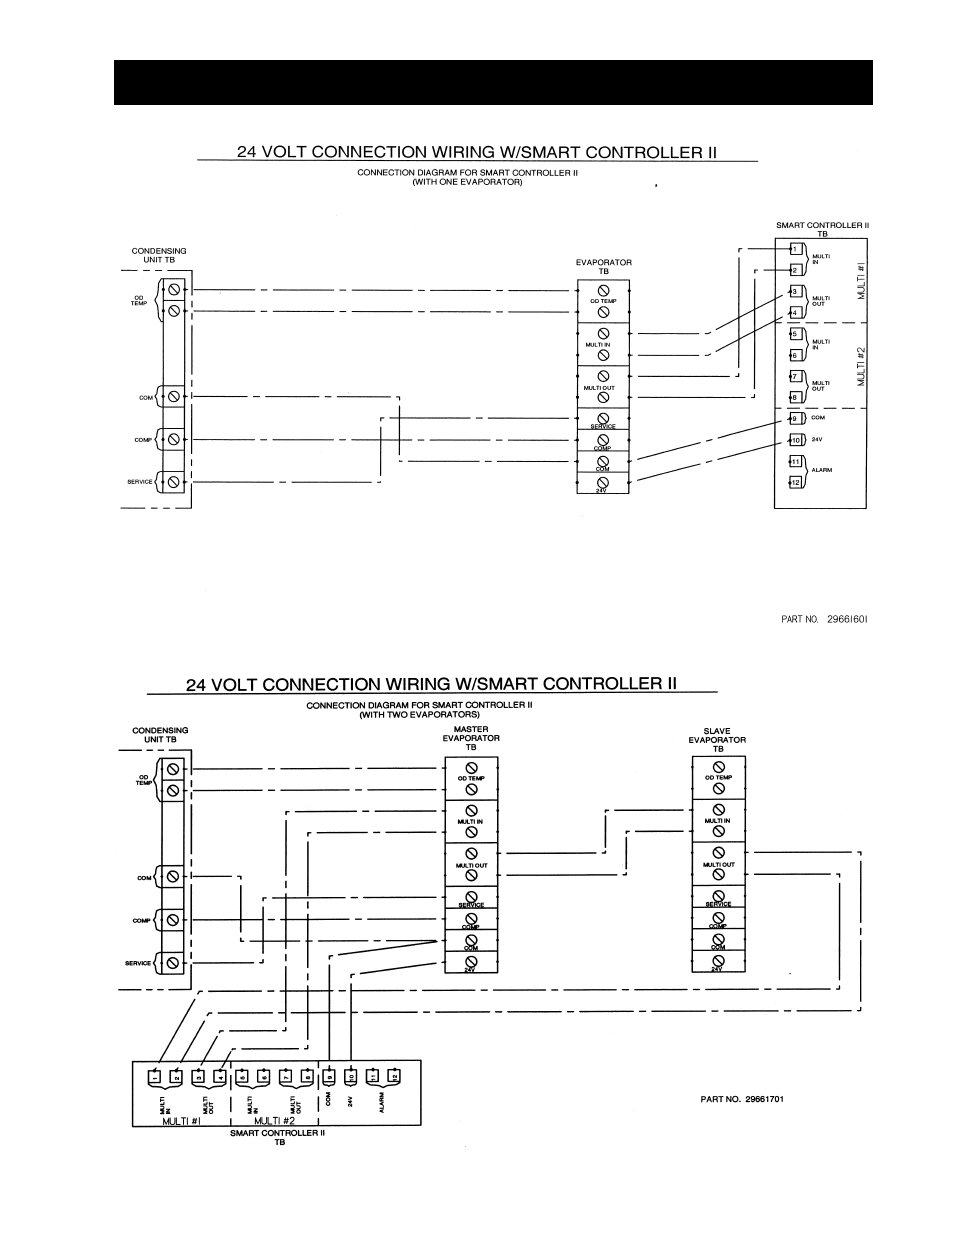 Wiring diagrams -23, Wiring diagrams | Heatcraft Refrigeration Products  BEACON II SMART CONTROLLER H-IM-80C User Manual | Page 21 / 24